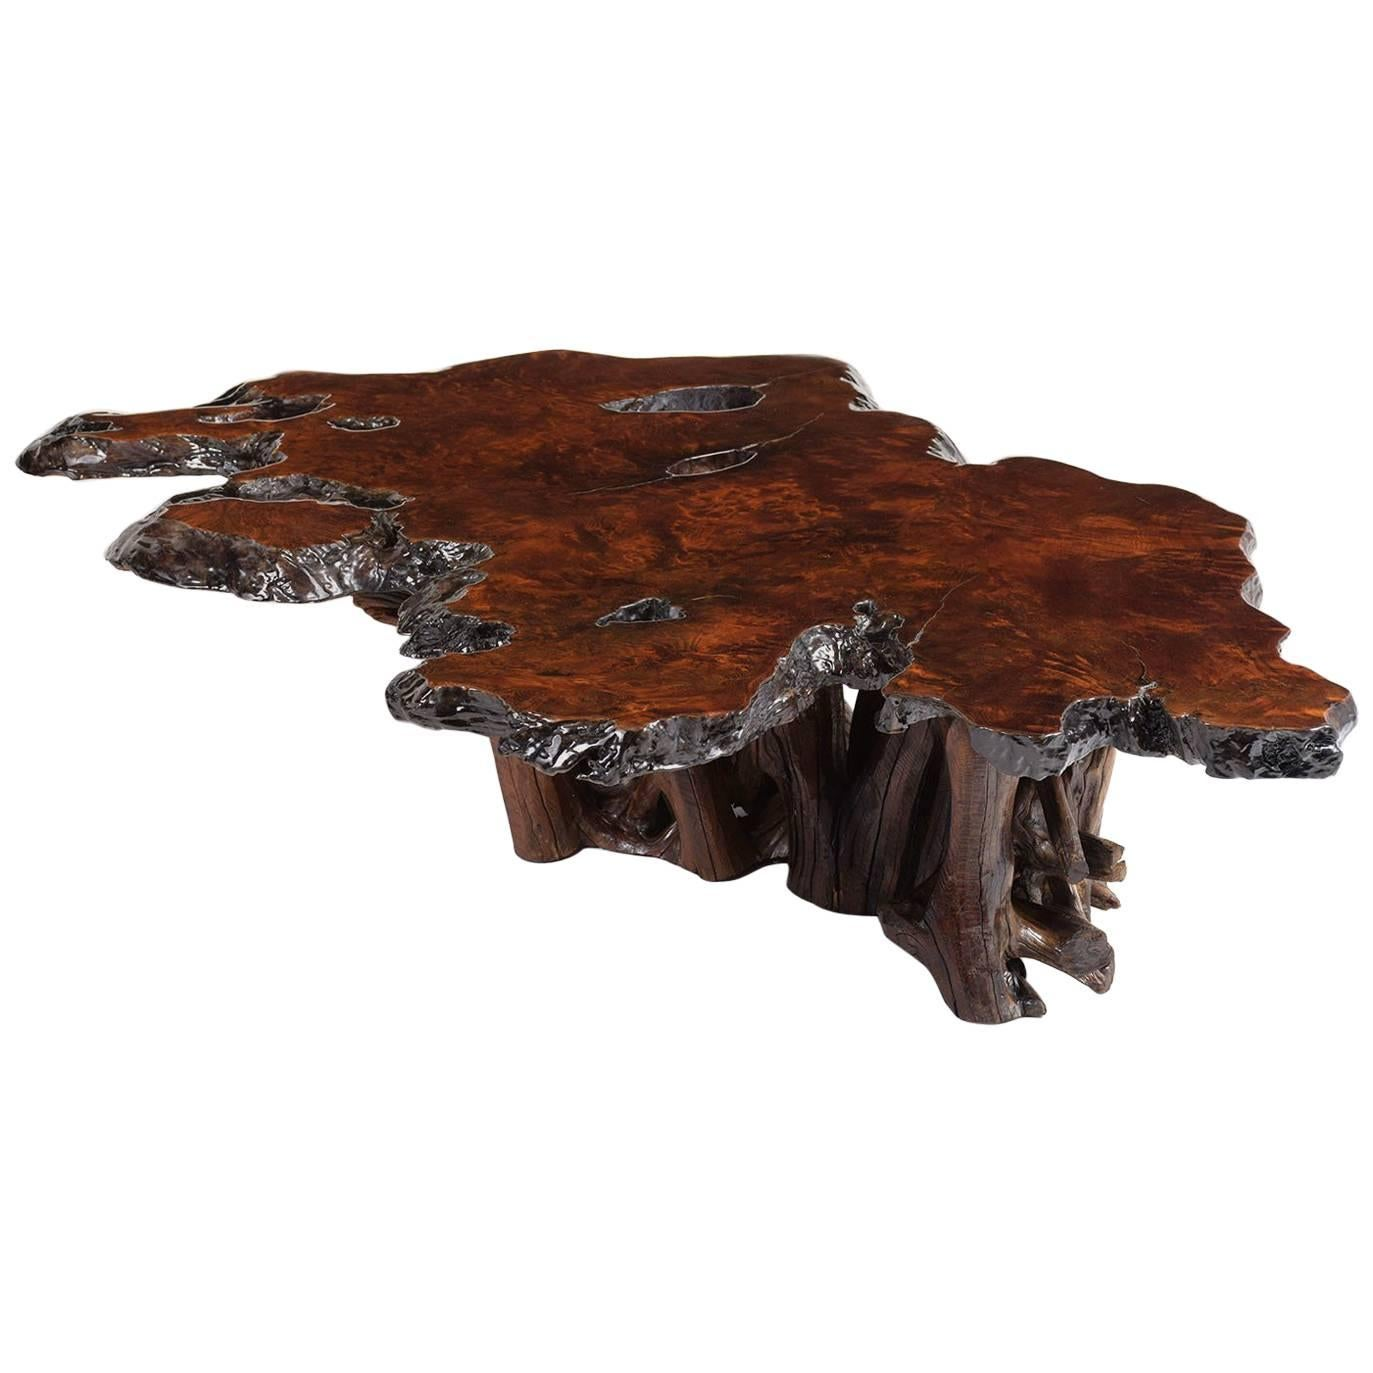 live edge burl wood coffee table for sale at 1stdibs rh 1stdibs com burl wood coffee table for sale burl wood coffee table glass top